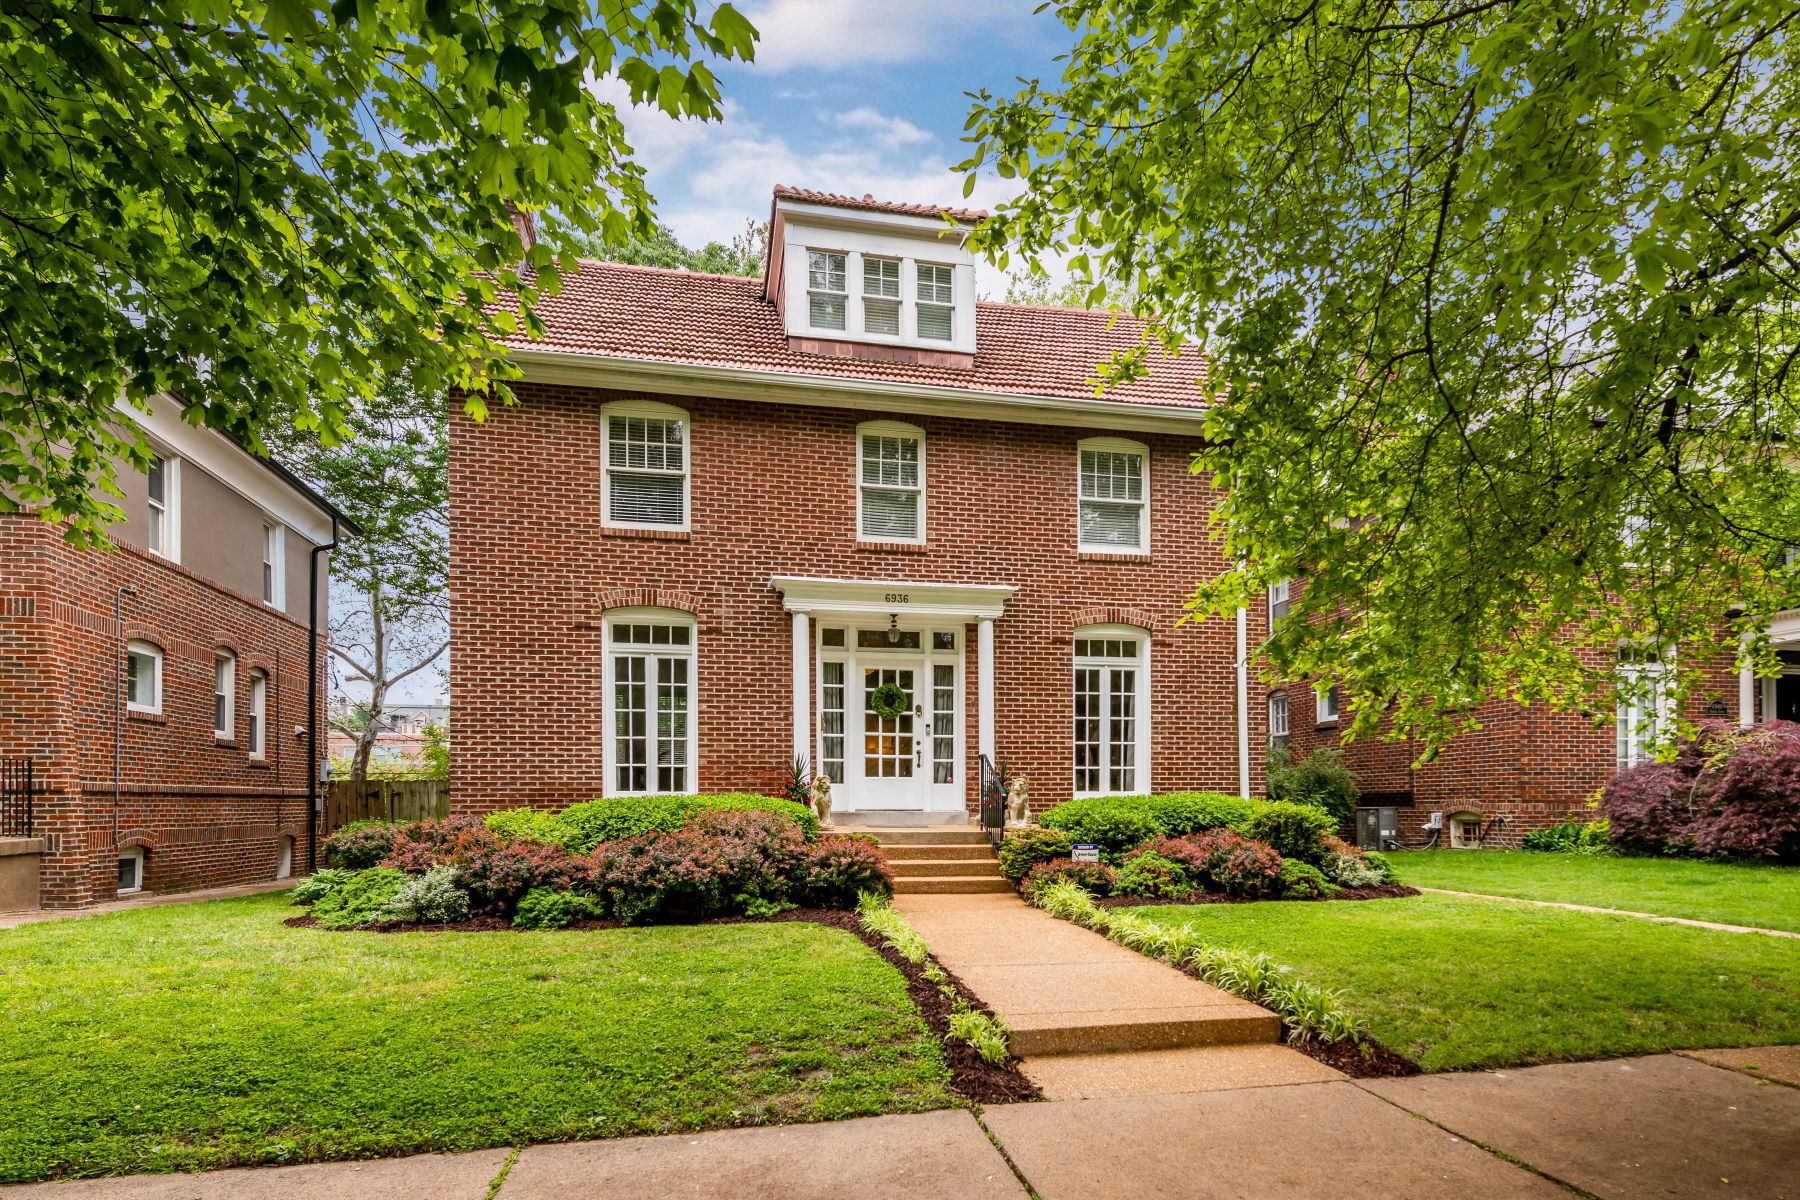 Single Family Homes for Sale at The Perfect House in Ames Place 6936 Pershing Avenue University City, Missouri 63130 United States